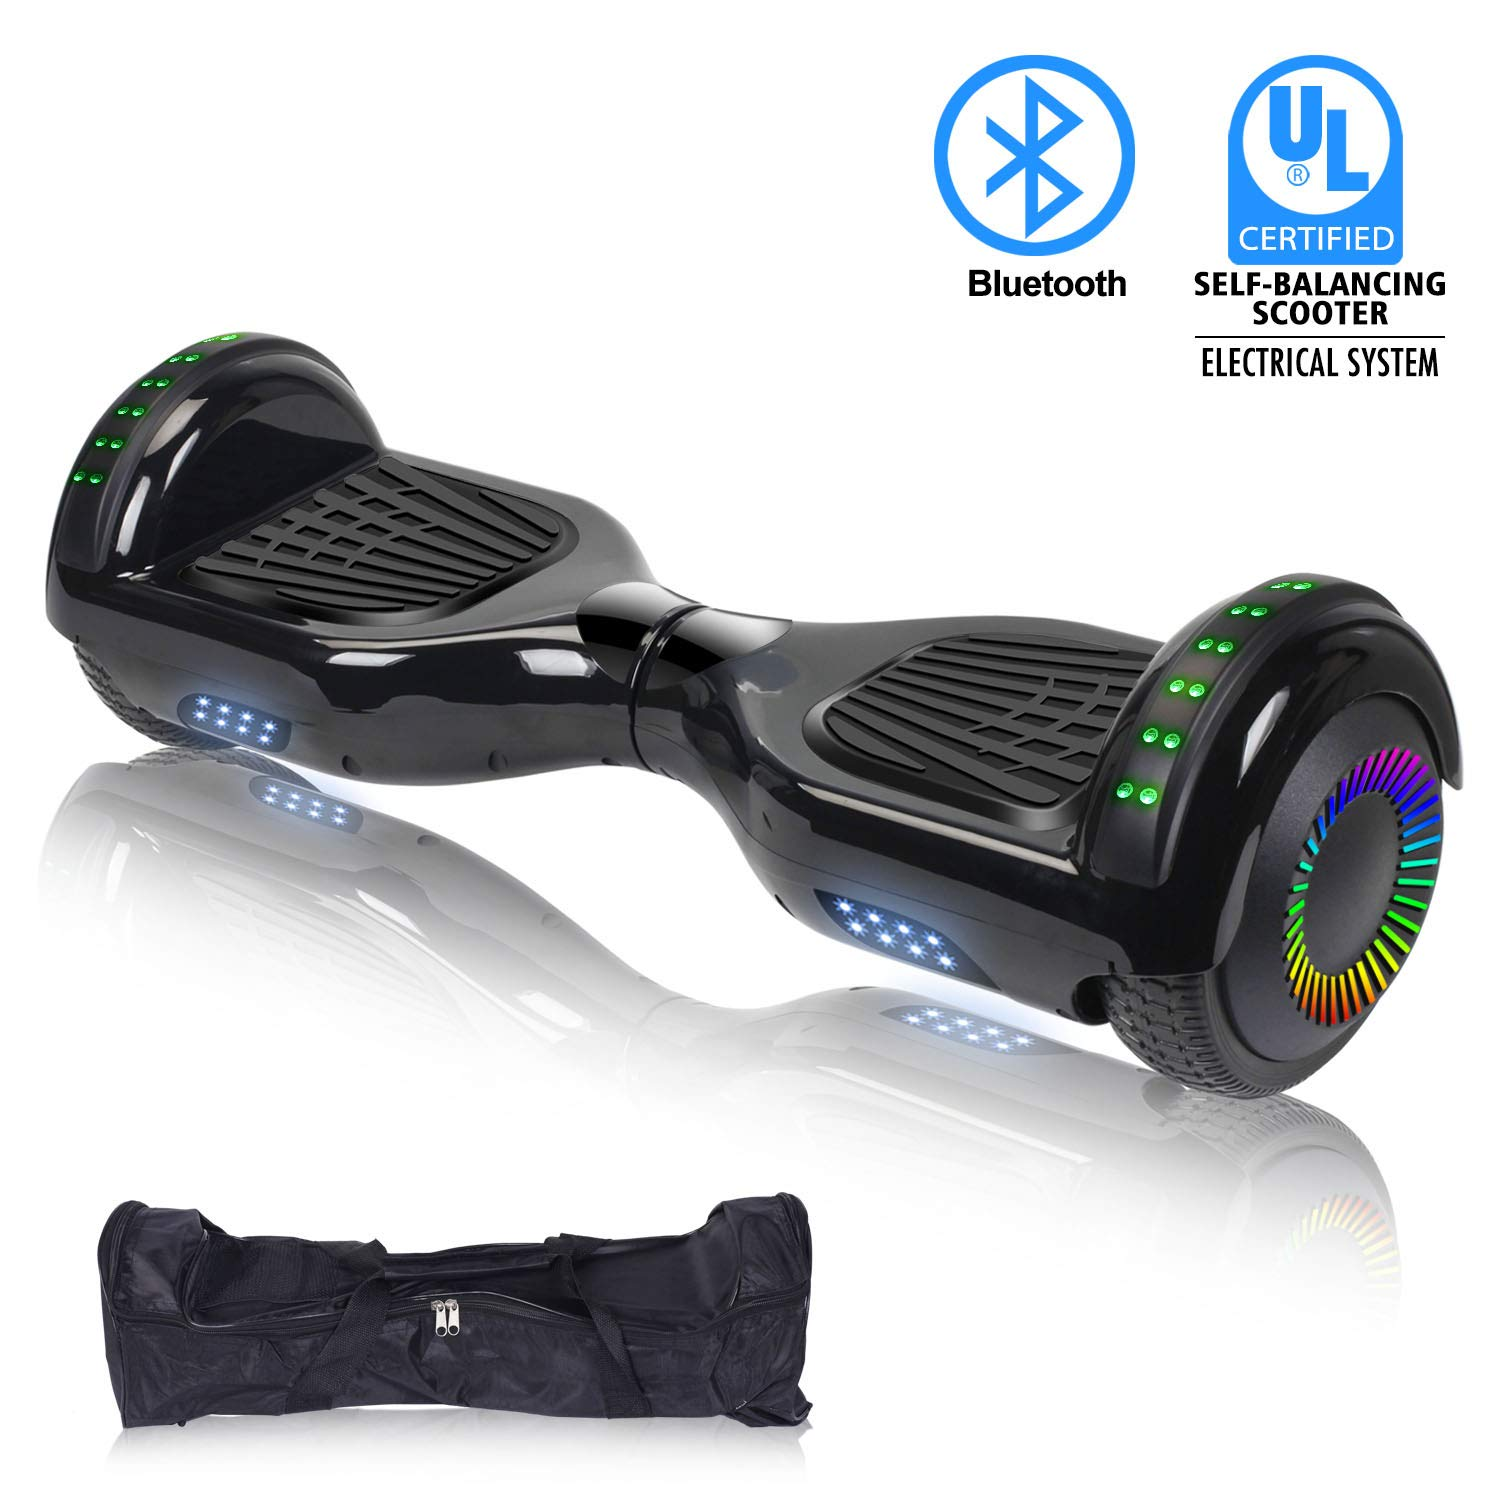 FLYING-ANT Hoverboard - Two-Wheel Self Balancing Electric Scooter for Kids